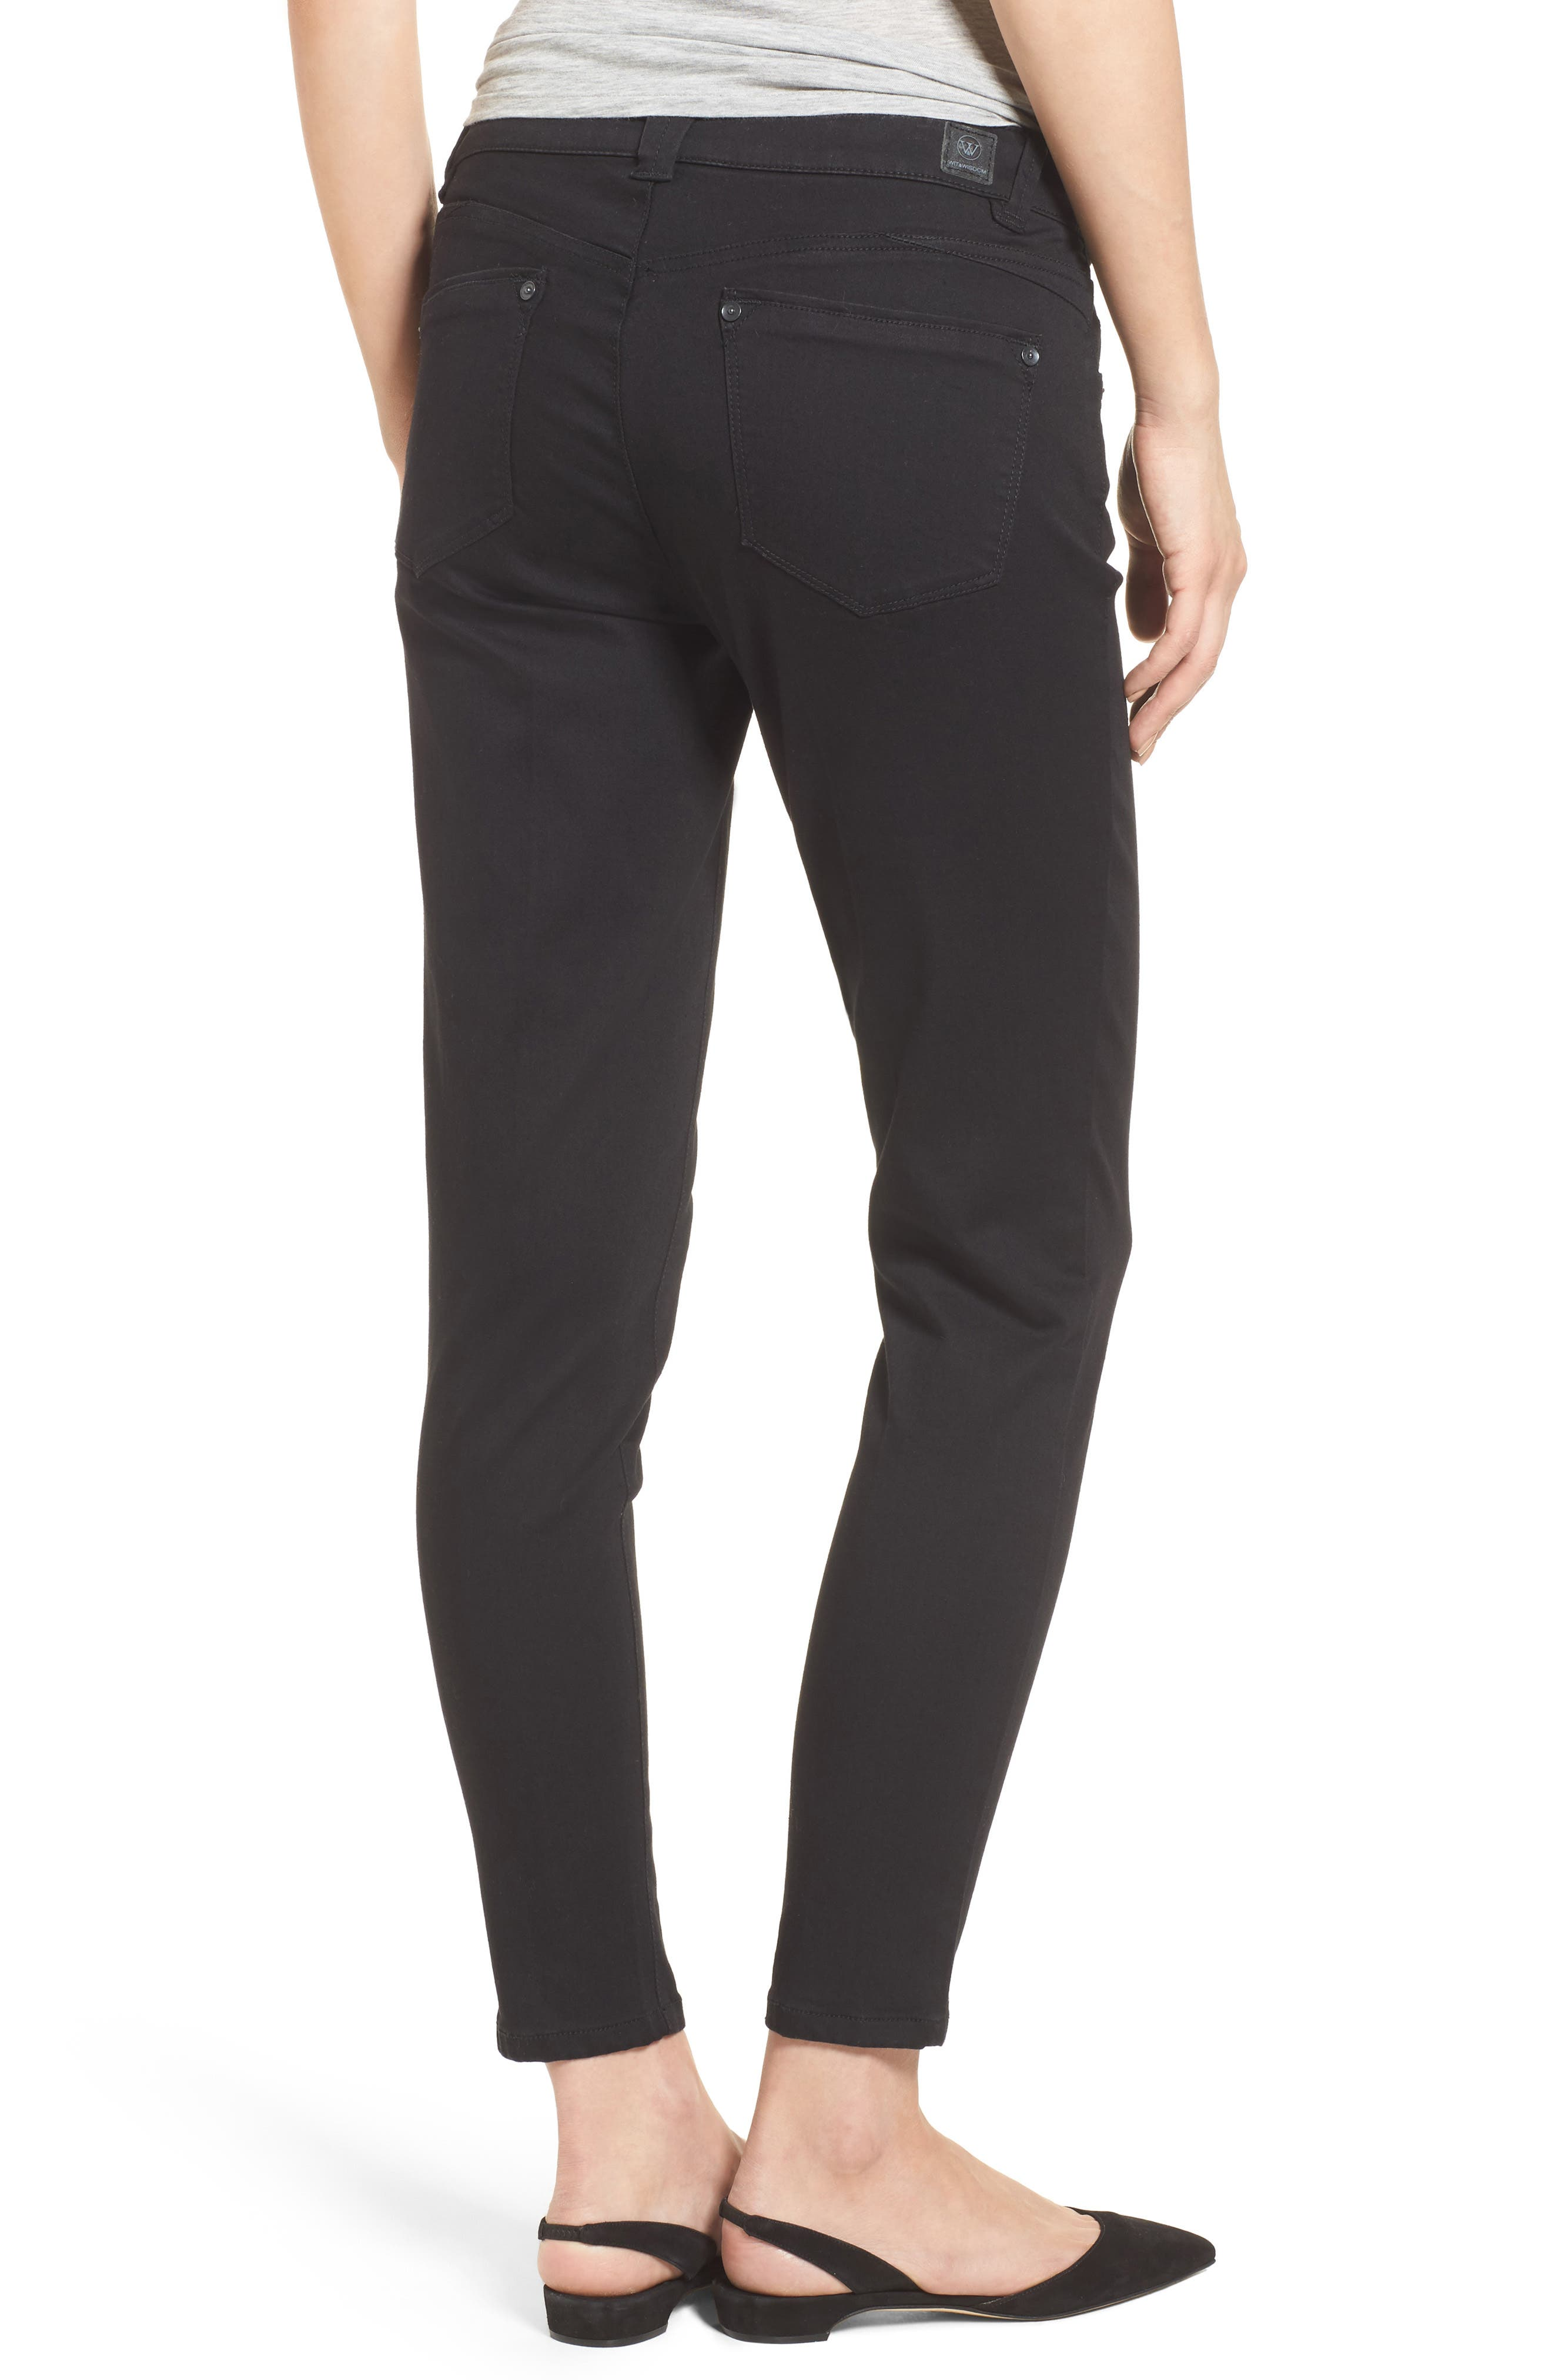 Alternate Image 2  - Wit & Wisdom Skinny Ankle Jeans (Nordstrom Exclusive) (Regular & Petite)